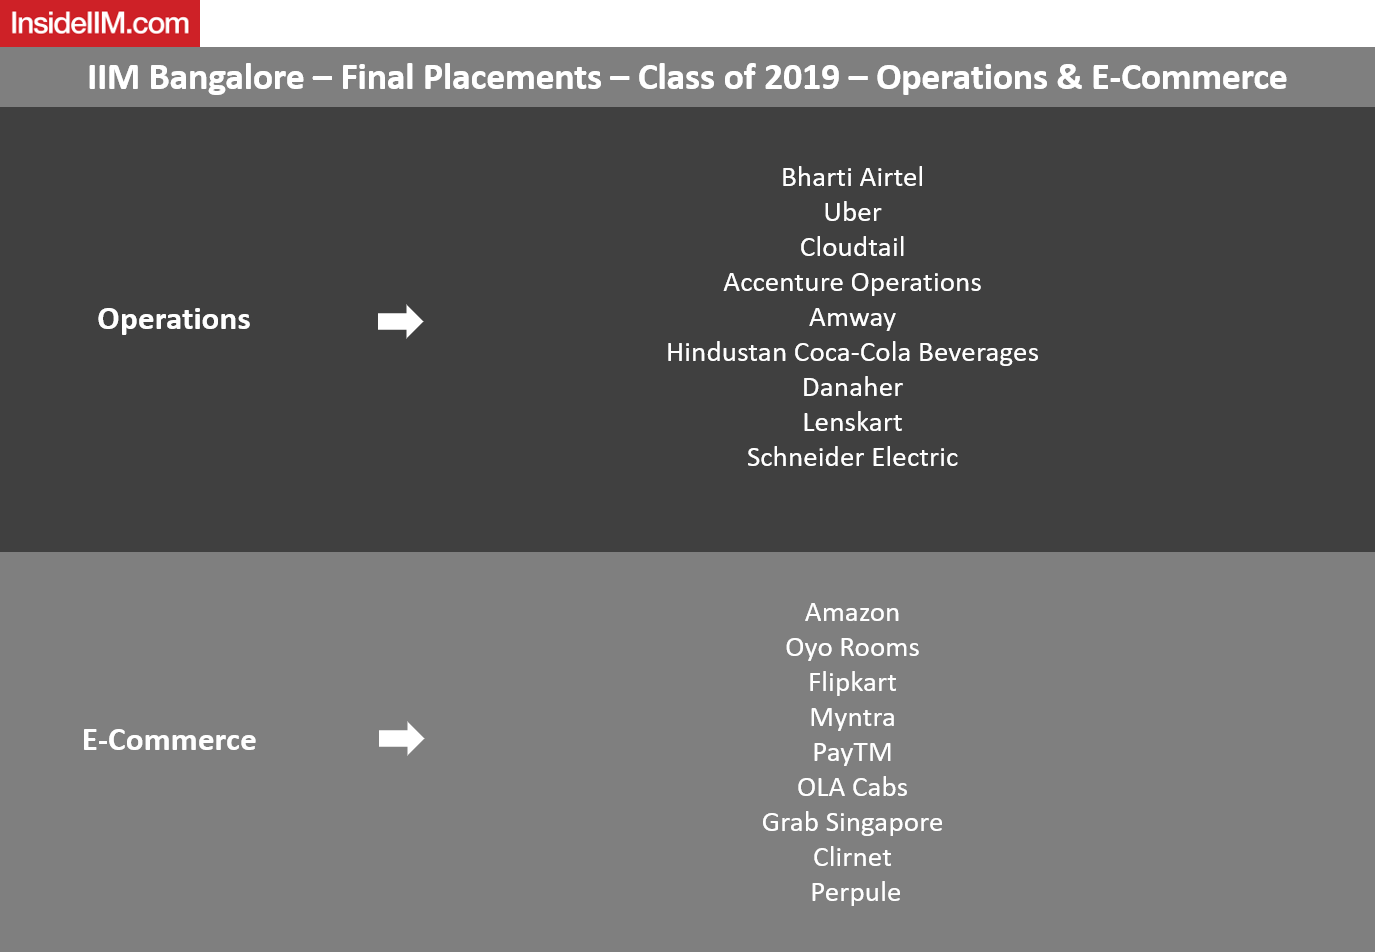 IIM Bangalore Final Placements 2019 - Operations and E-Commerce